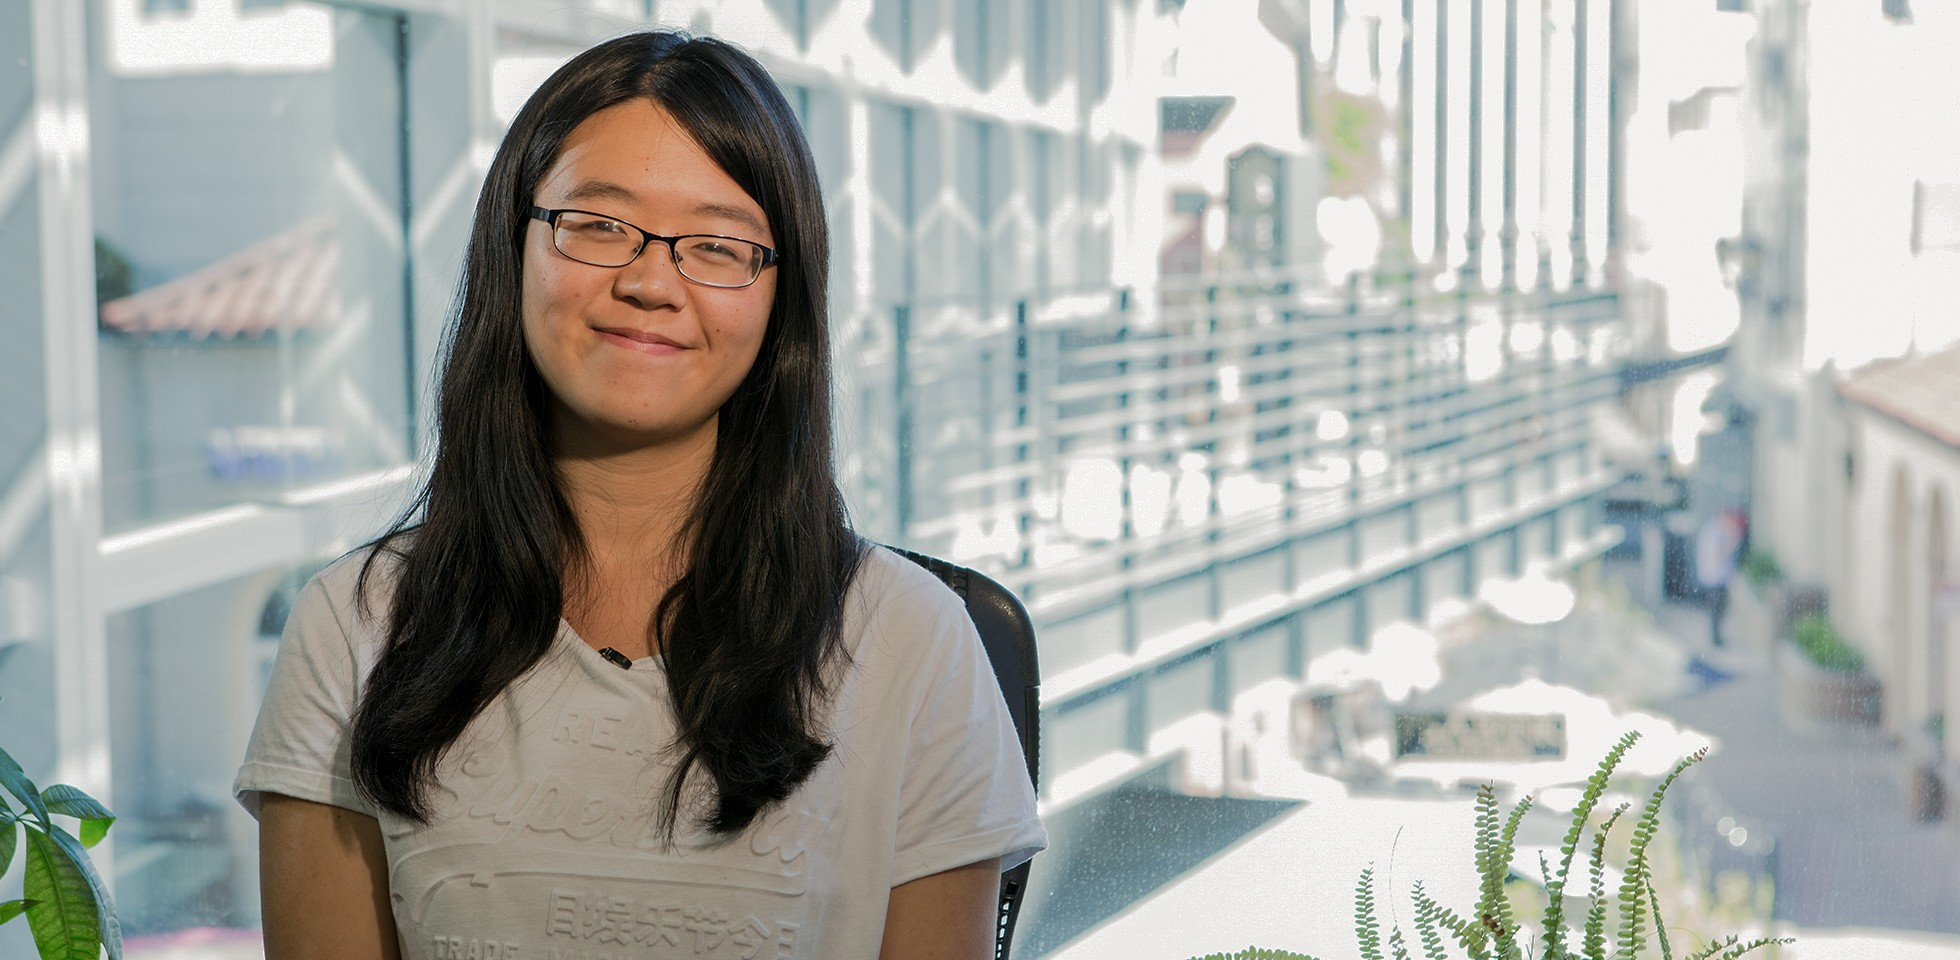 Victoria Shi, Front-end Engineer - HealthTap Careers